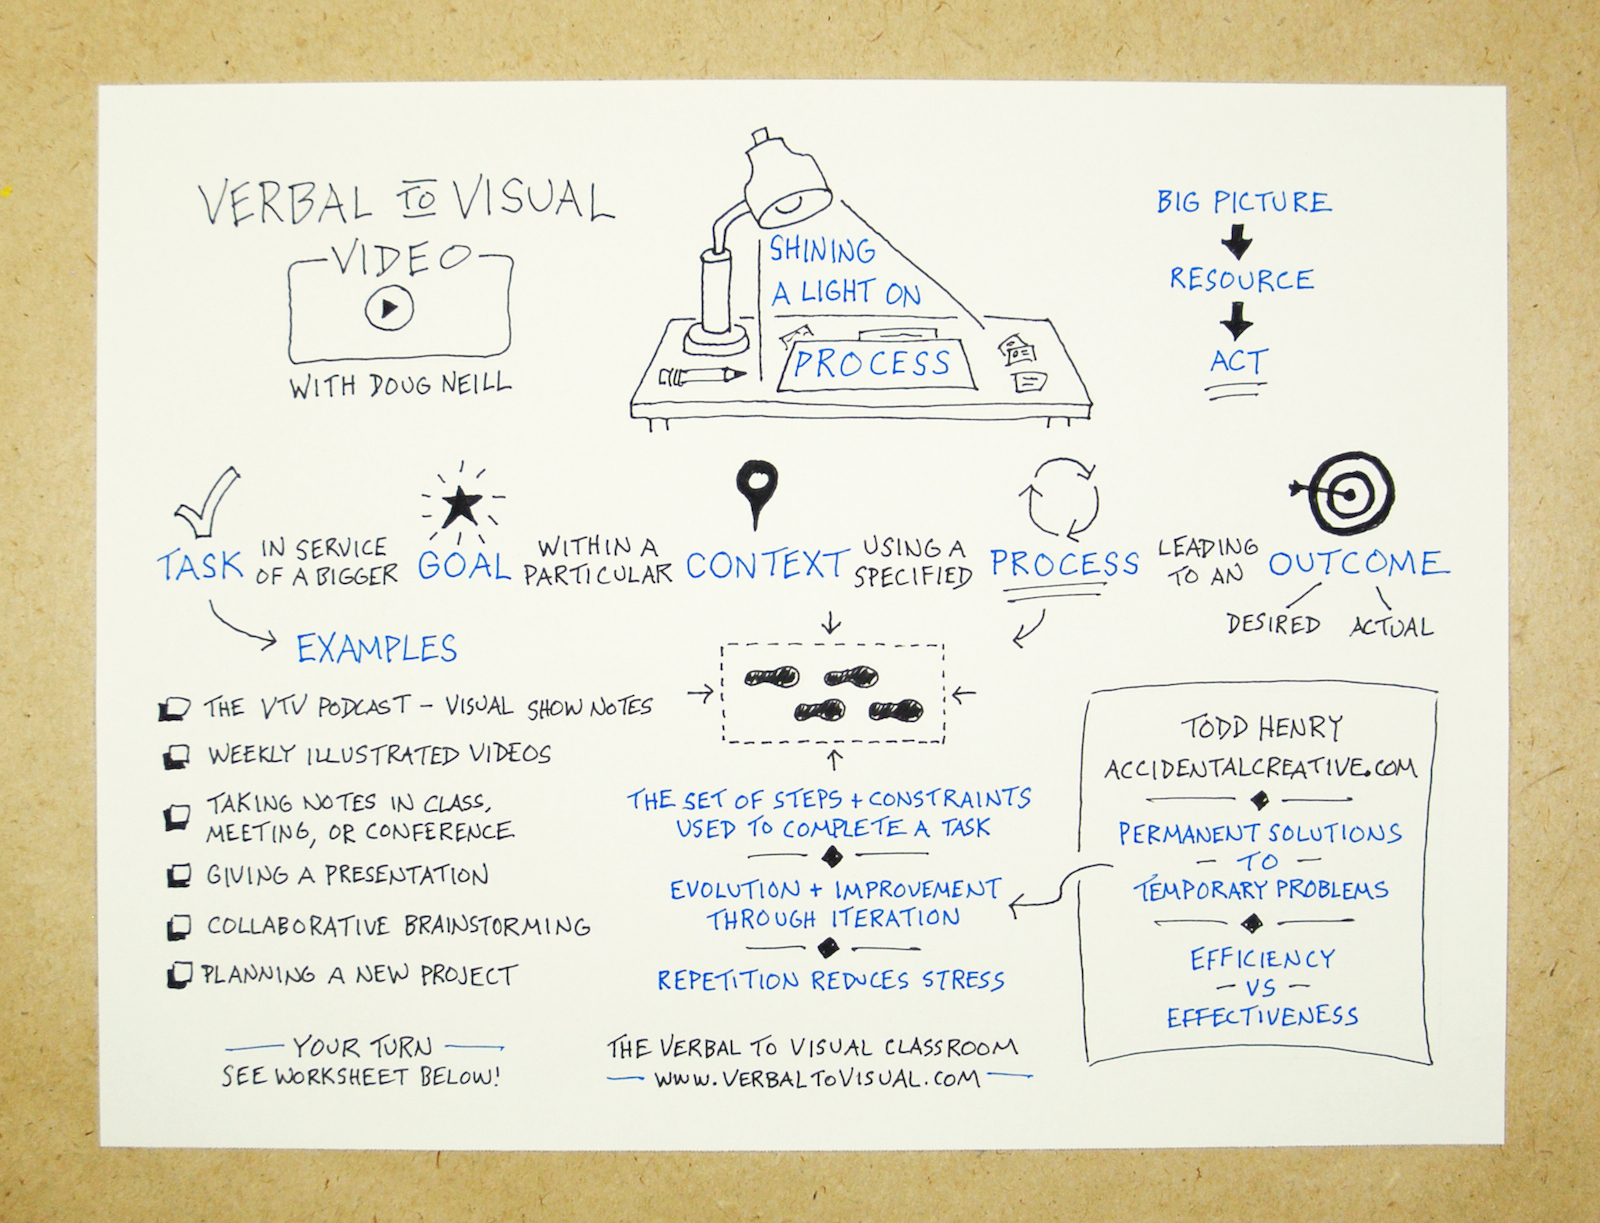 Shining A Light On Process: From Big Picture To Concrete Steps - Verbal To Visual Video Episode 9 - Doug Neill - visual note-taking, sketchnoting, doodling, task, goal, context, process, outcome, todd henry, accidental creative